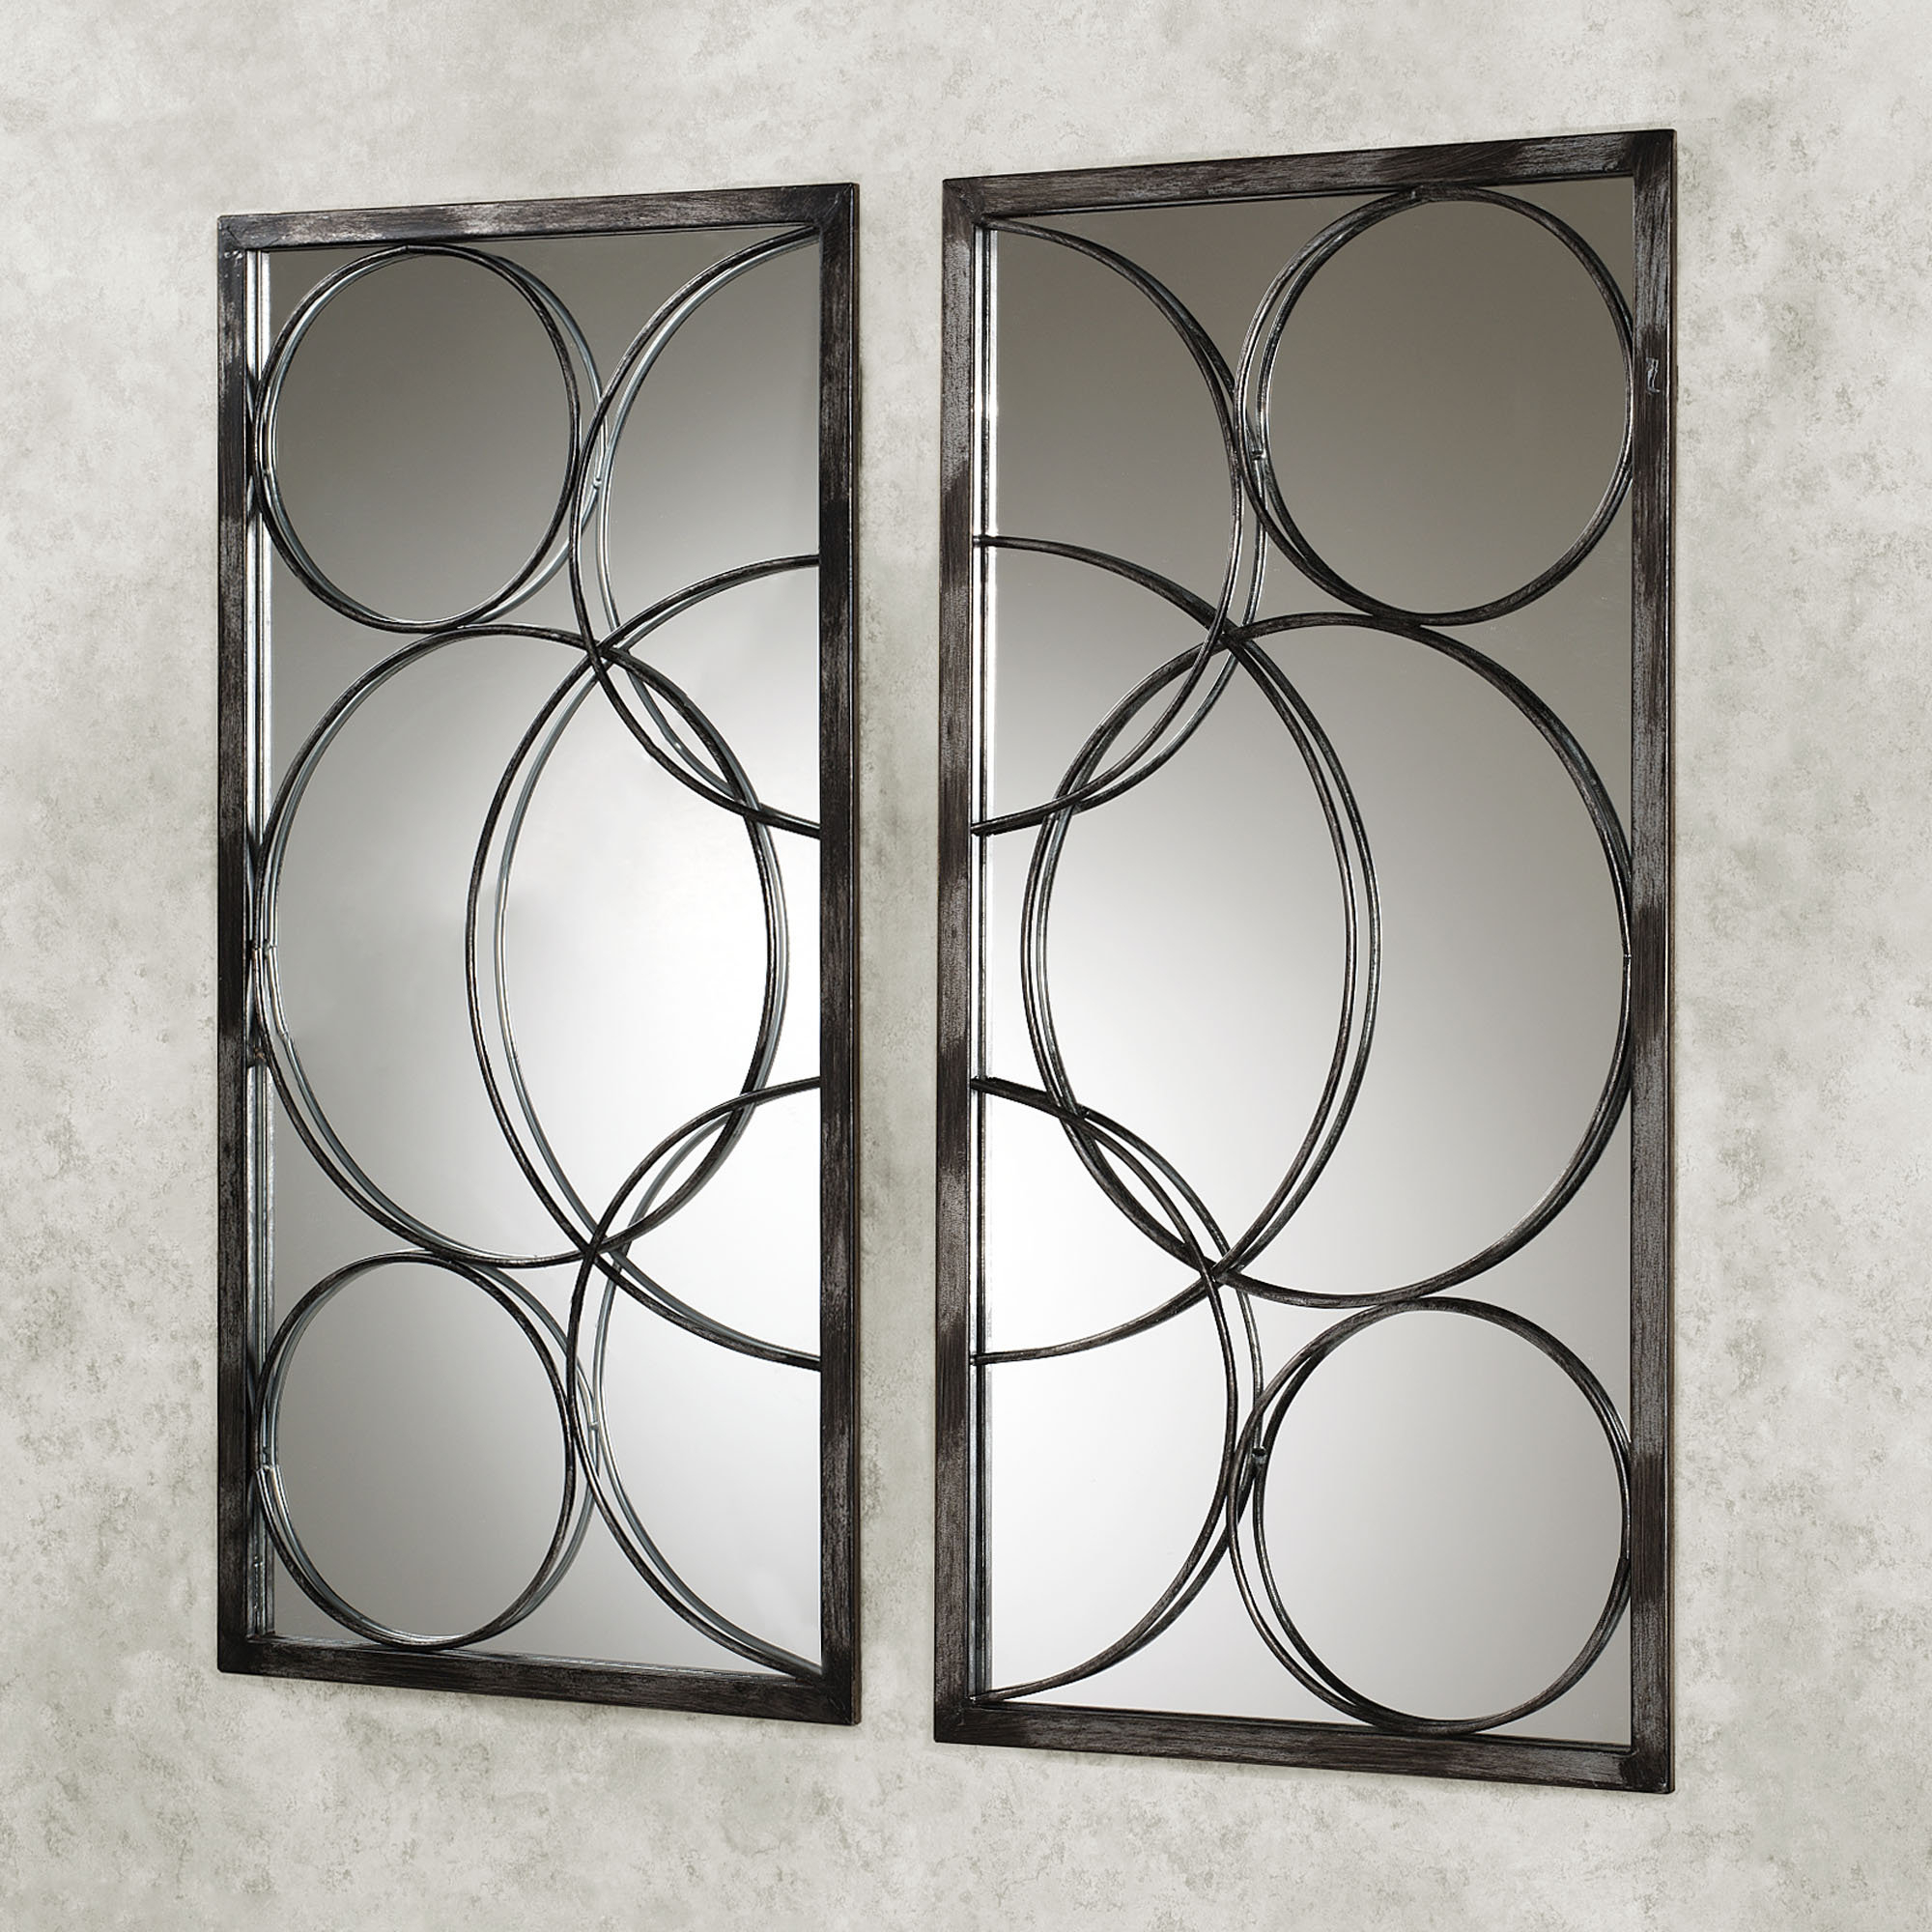 Decoration For Home In Fashionable Decorative Black Wall Mirrors (View 6 of 20)